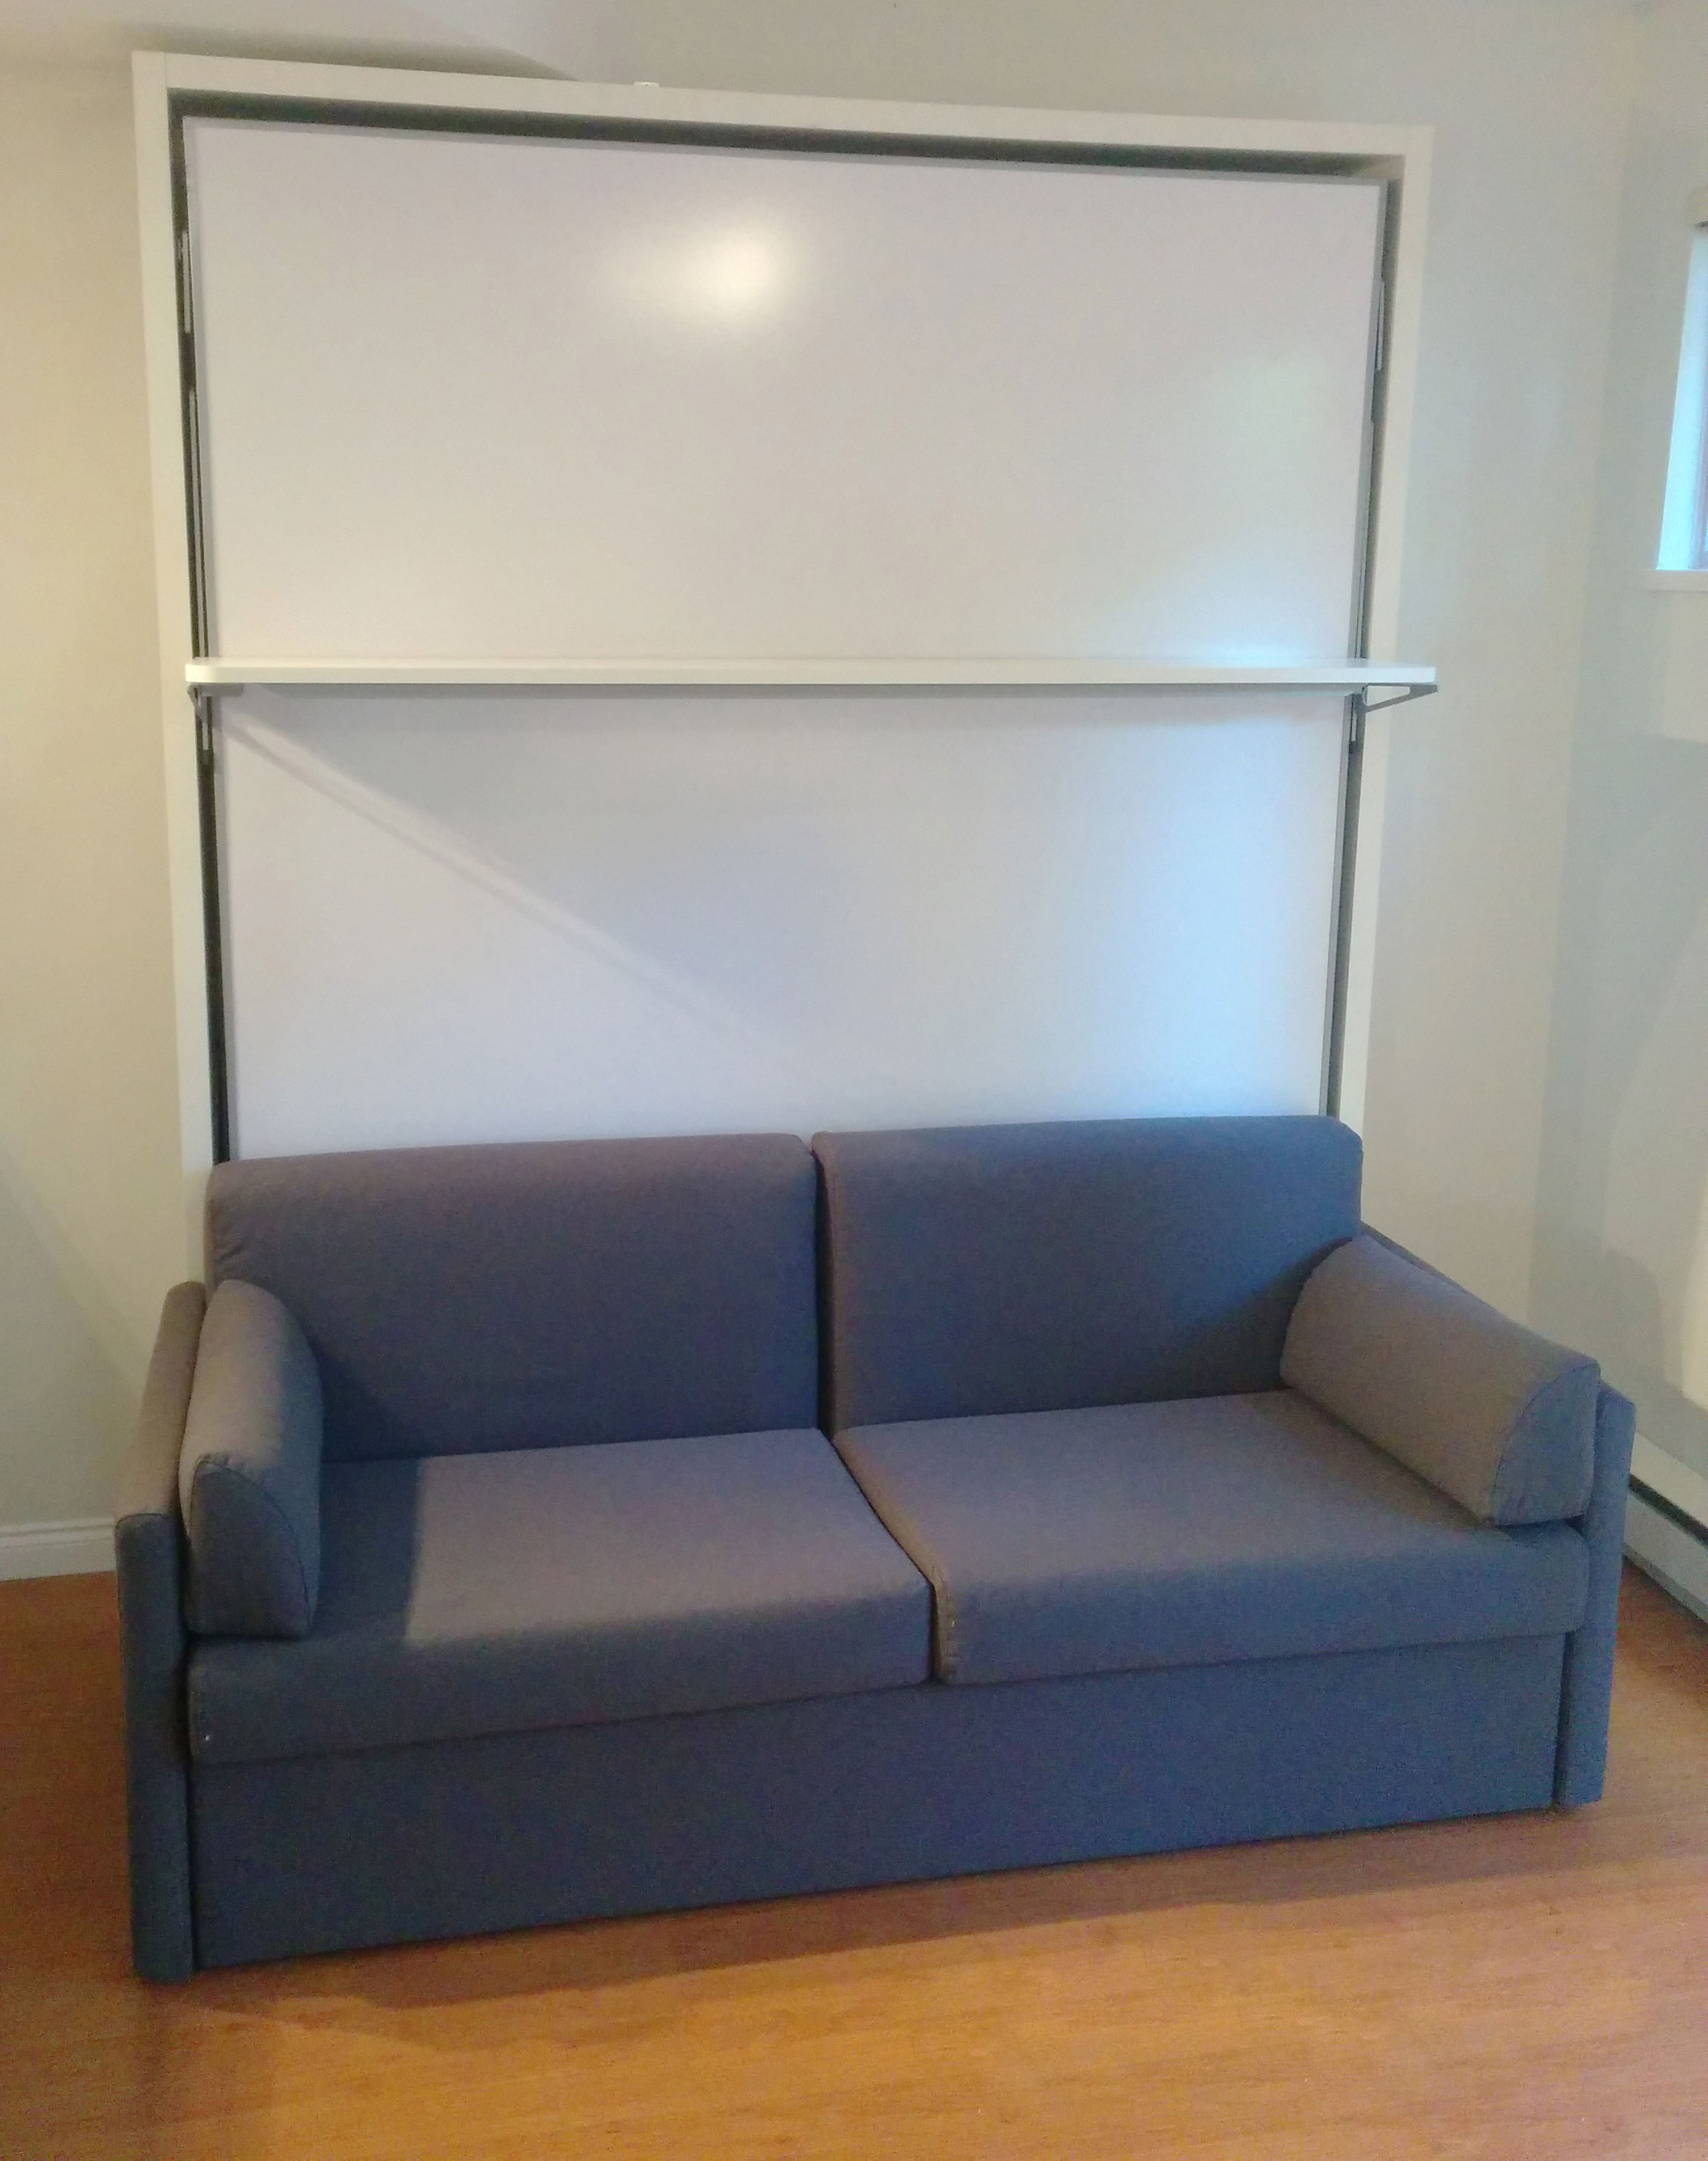 Compatto Murphy Bed Over Sofa With Floating Shelf Expand Furniture